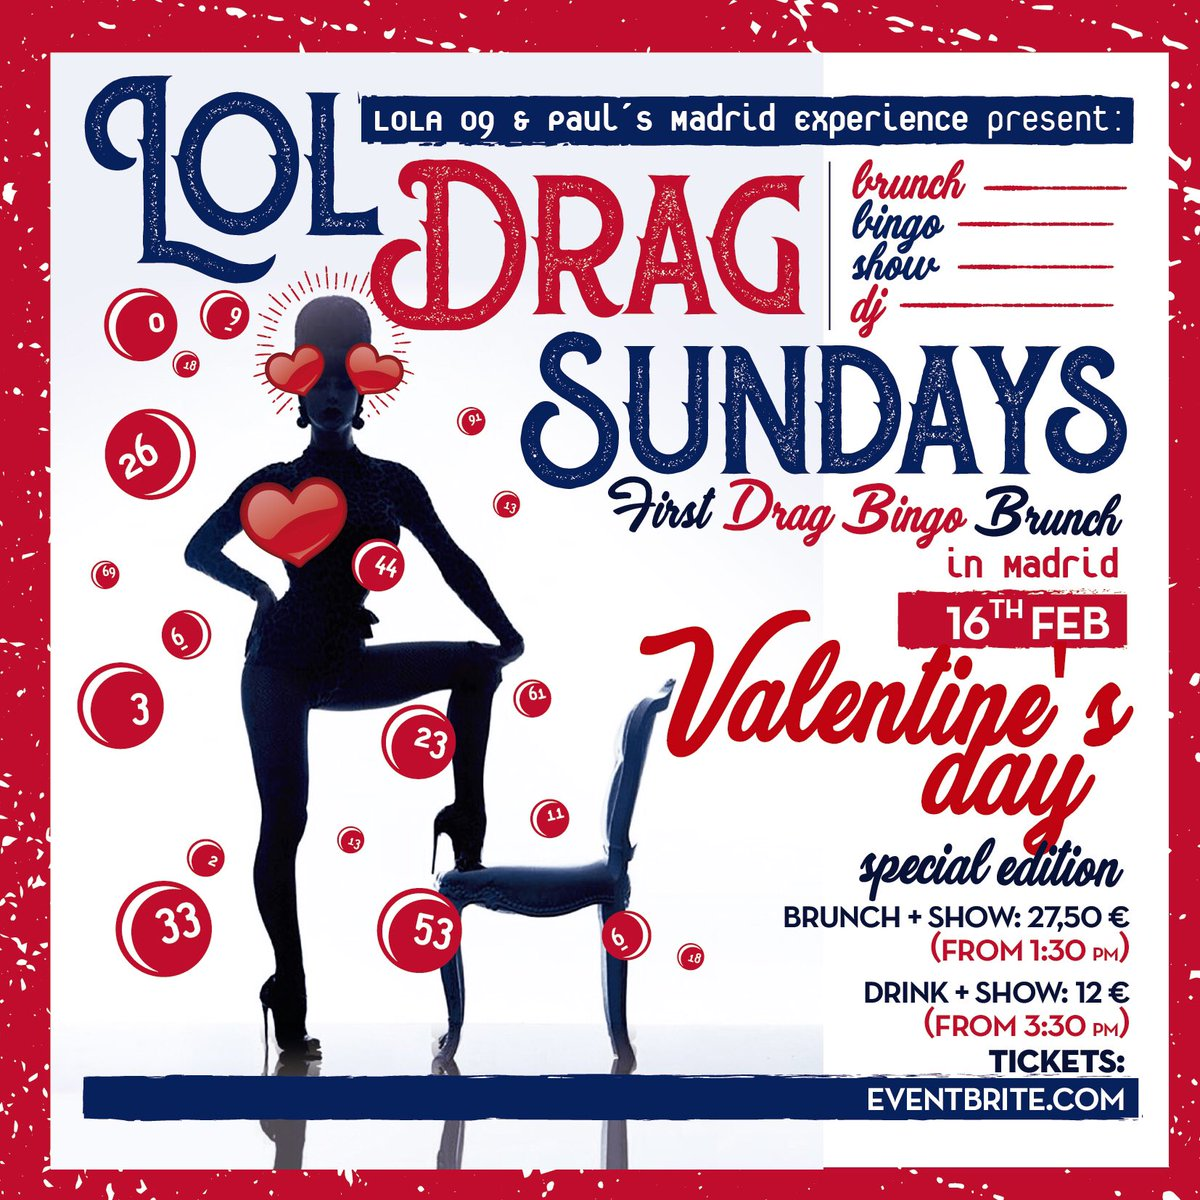 Our favorite Sunday show is back with a vengeance..get your tickets for #Madrid's only #Drag Queen Bingo #Brunch @Lola09Madrid @BingoDrag #ValentinesDay special . Tickets @EventbriteES https://t.co/RrKzNfnz83